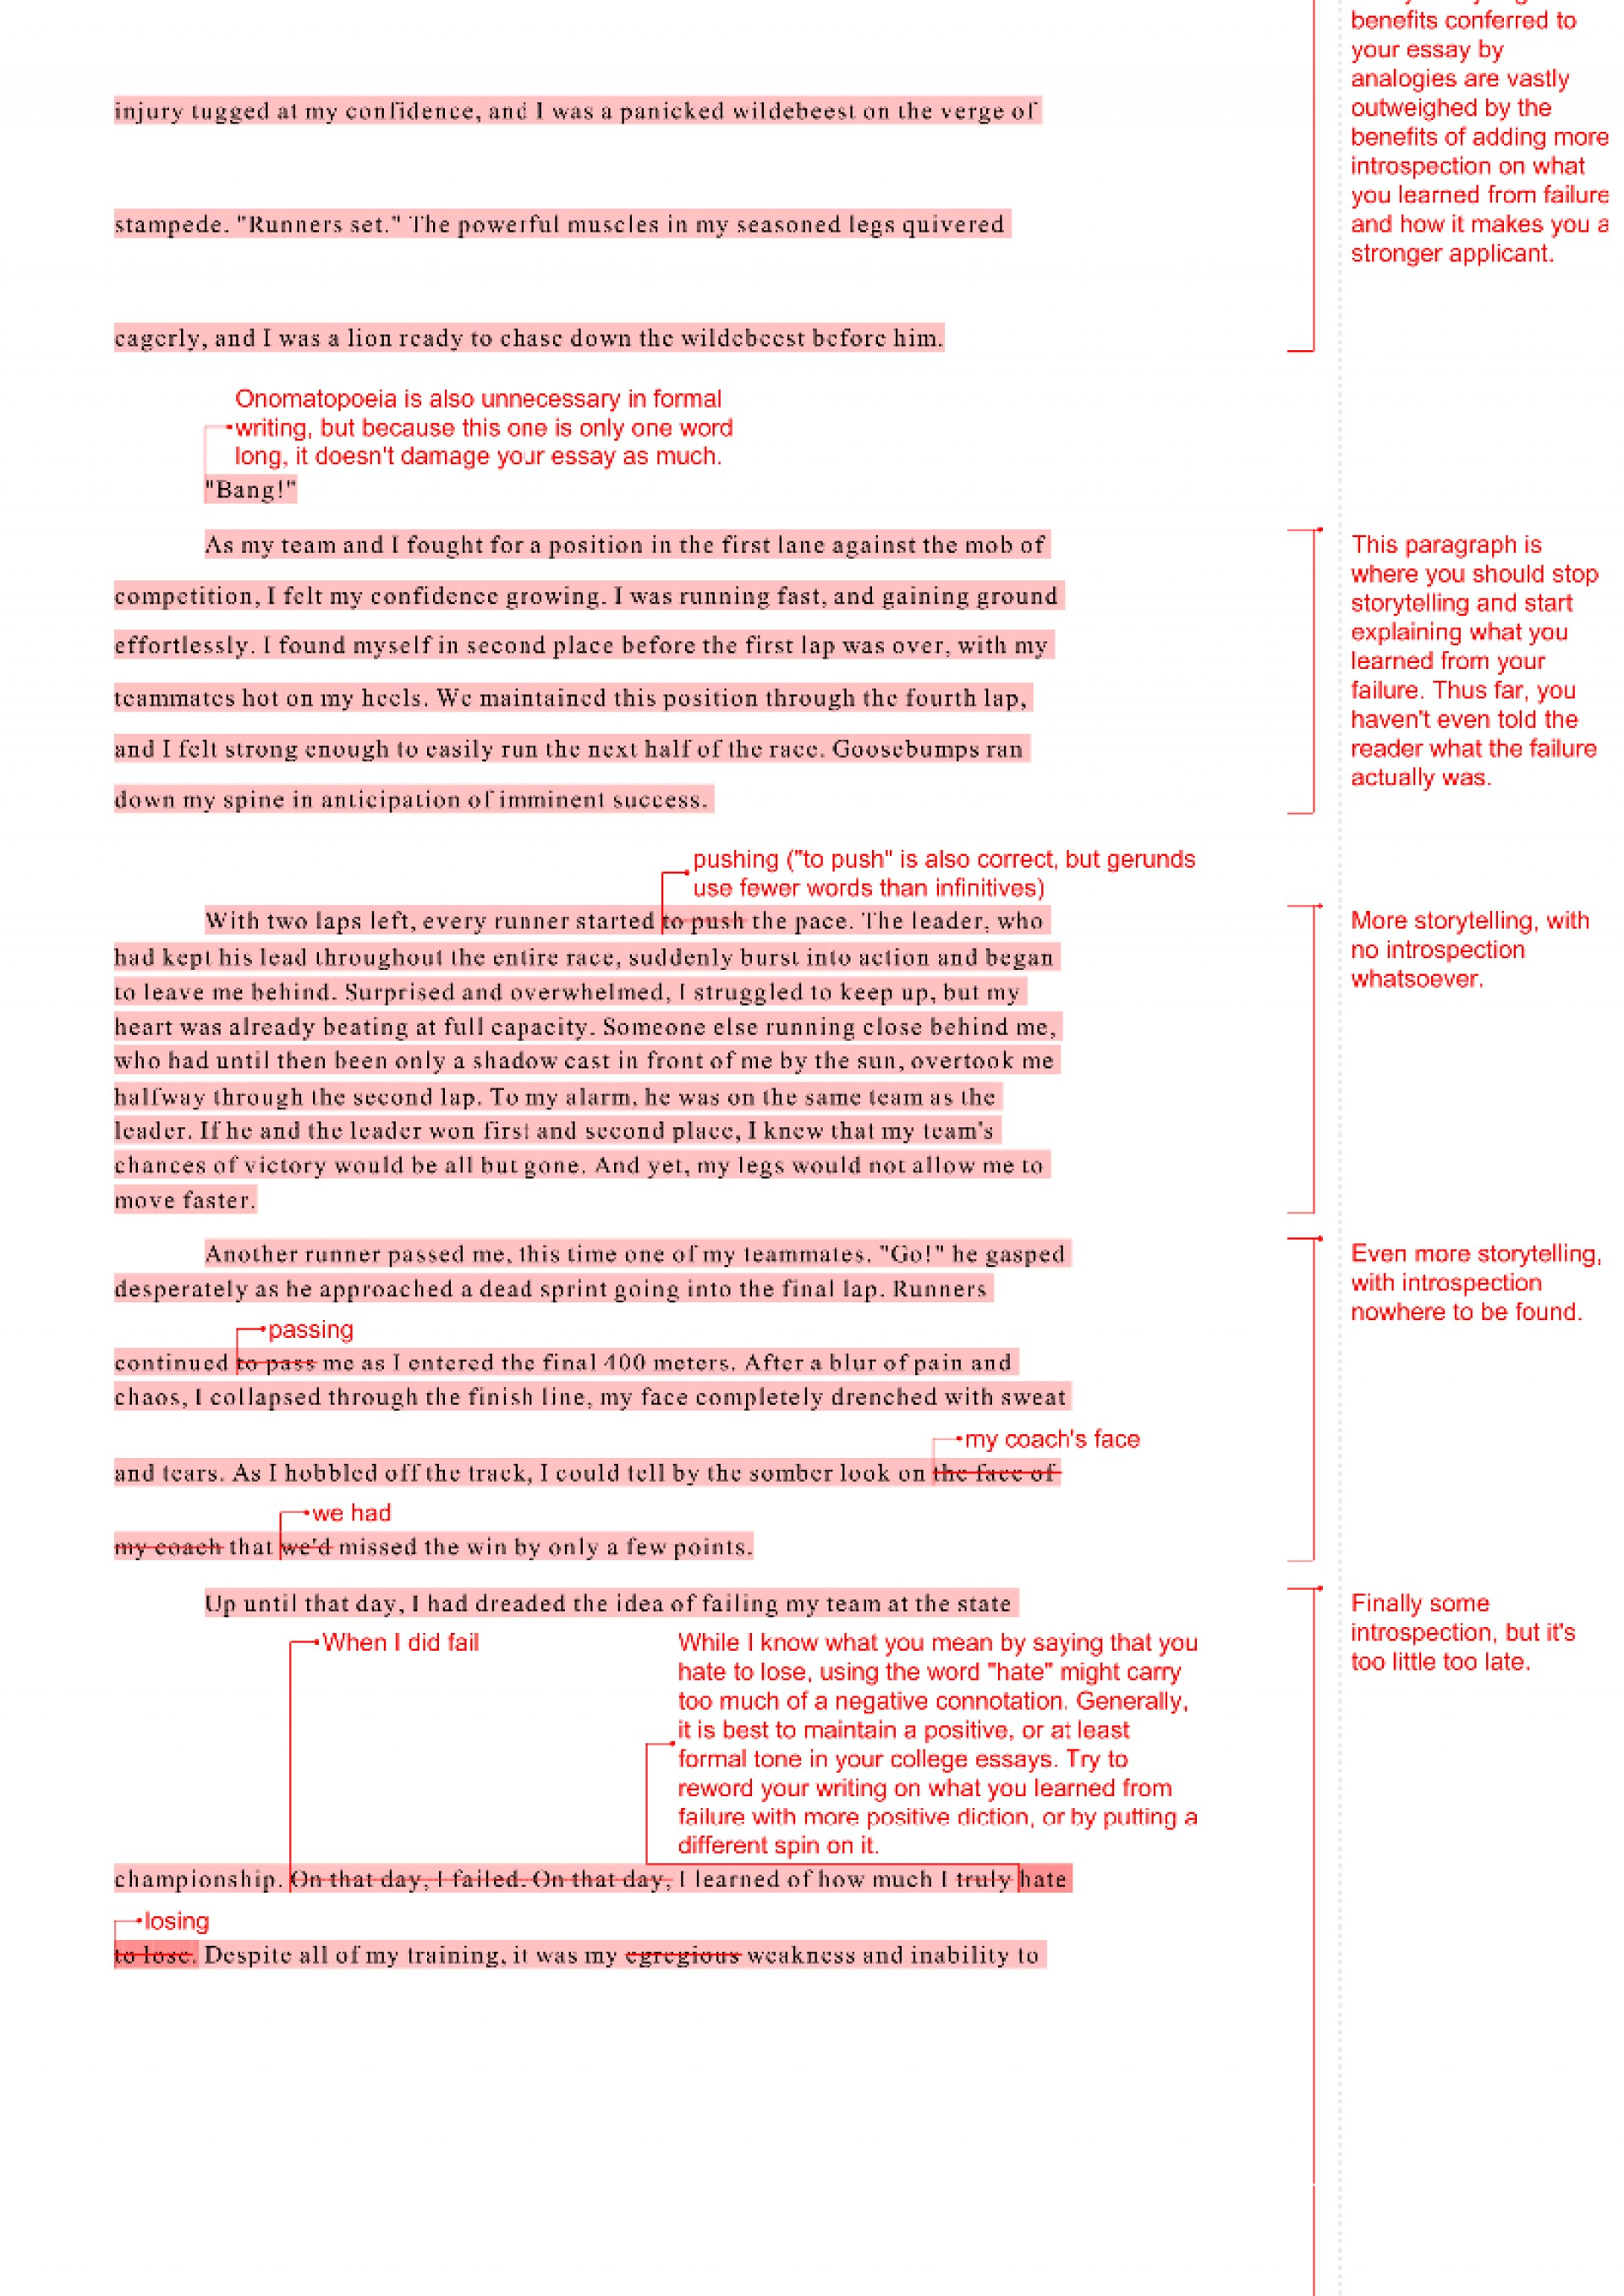 011 Essay Example Professor Revise My Quality Writing Feedback On Student Revision Examp Amazing Teaching College In French 1920